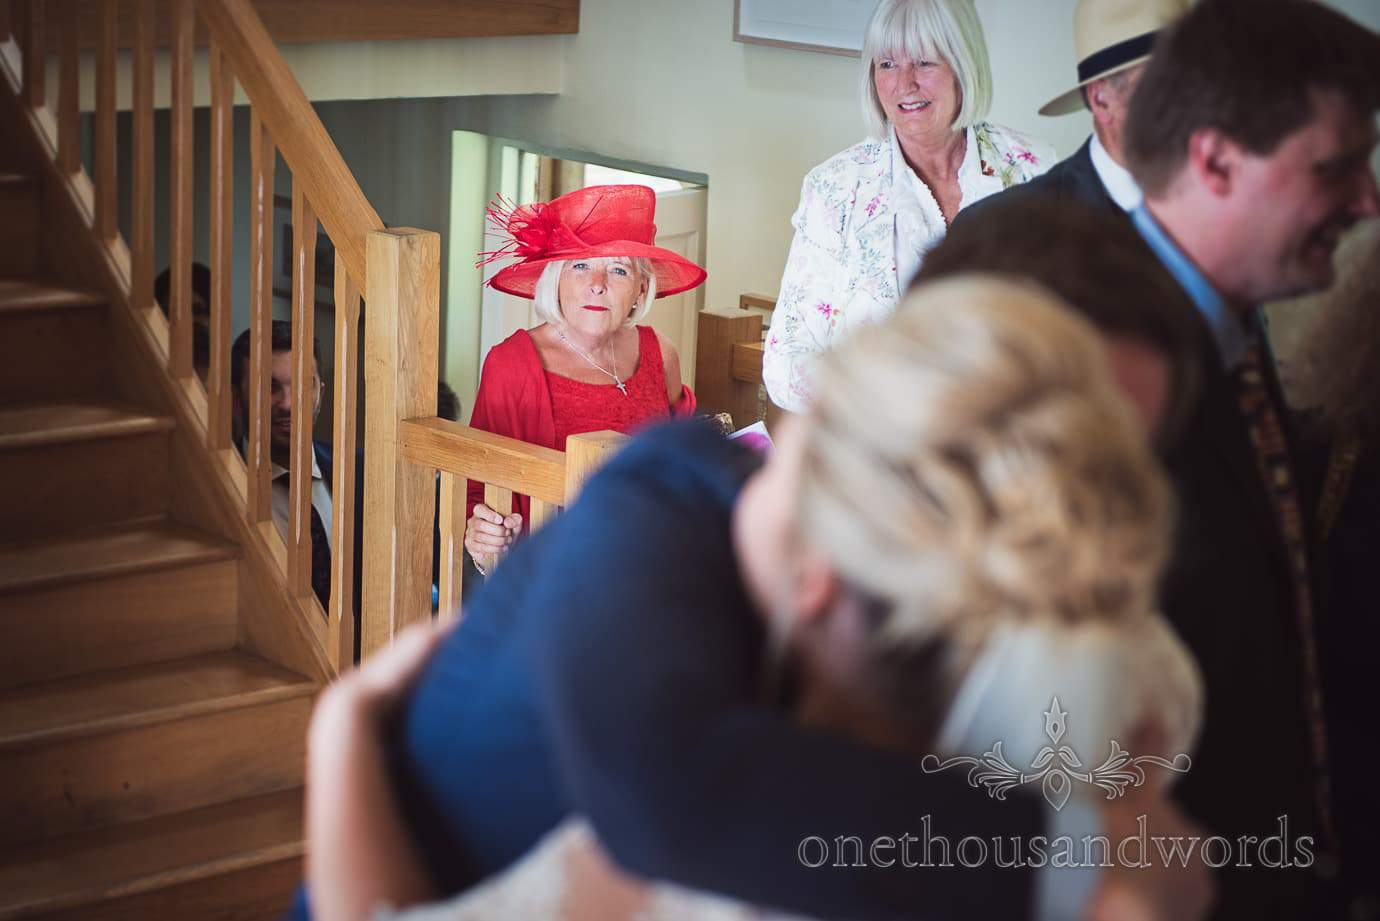 Elderly wedding guest in red wedding outfit climbs stairs to receiving line